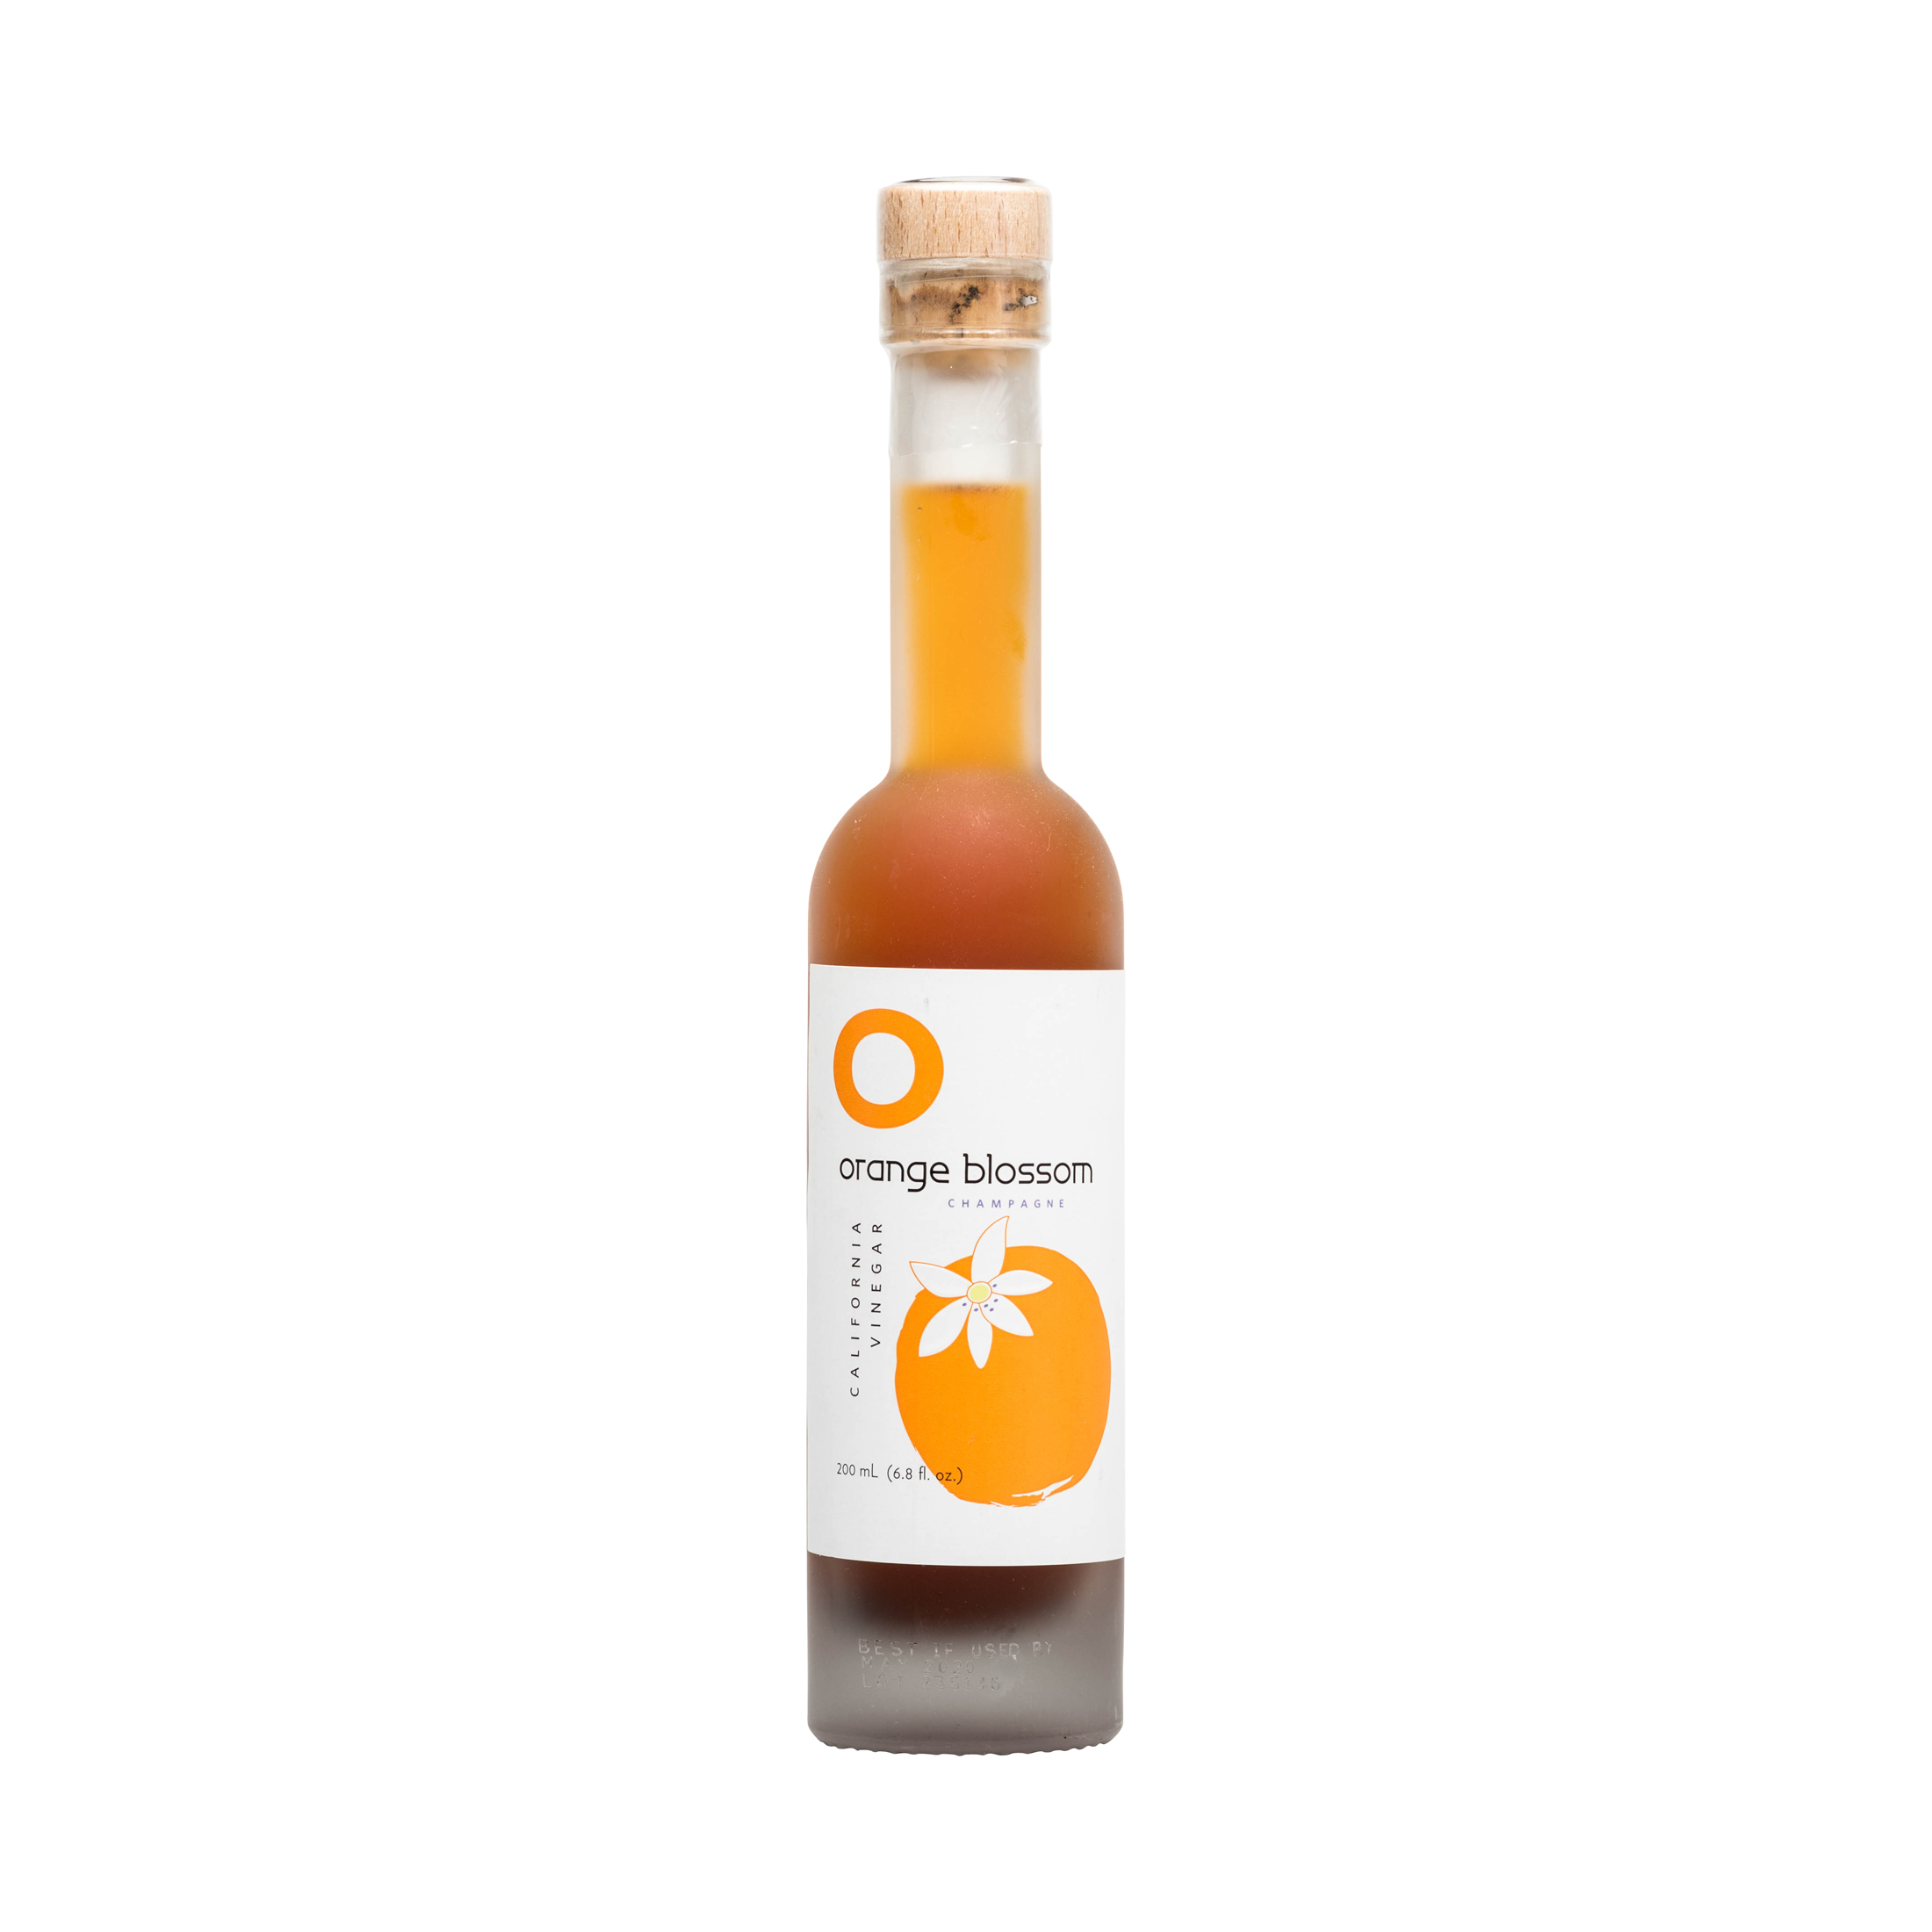 O ORANGE BLOSSOM VINEGAR